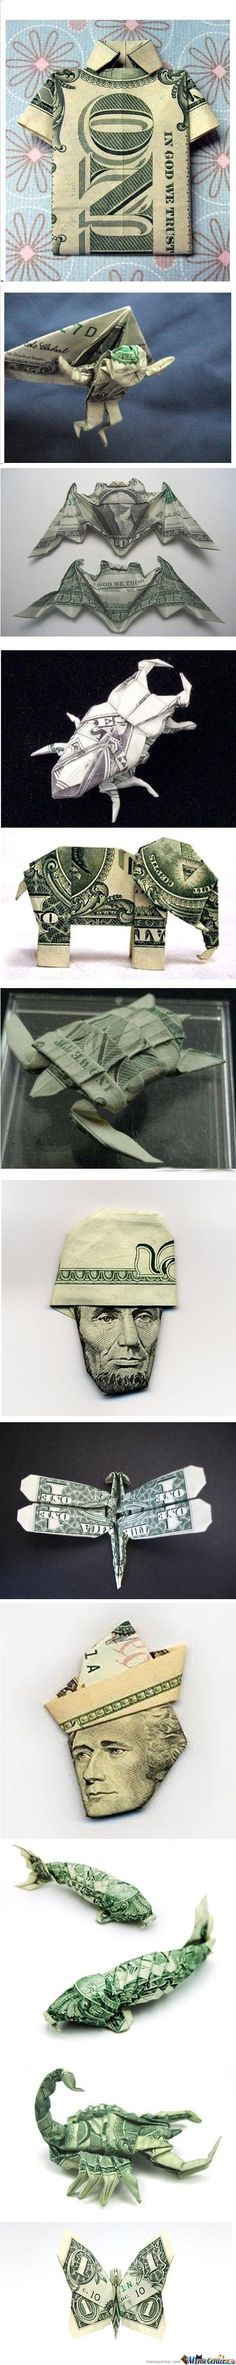 Money origami. Great way to gift cash!